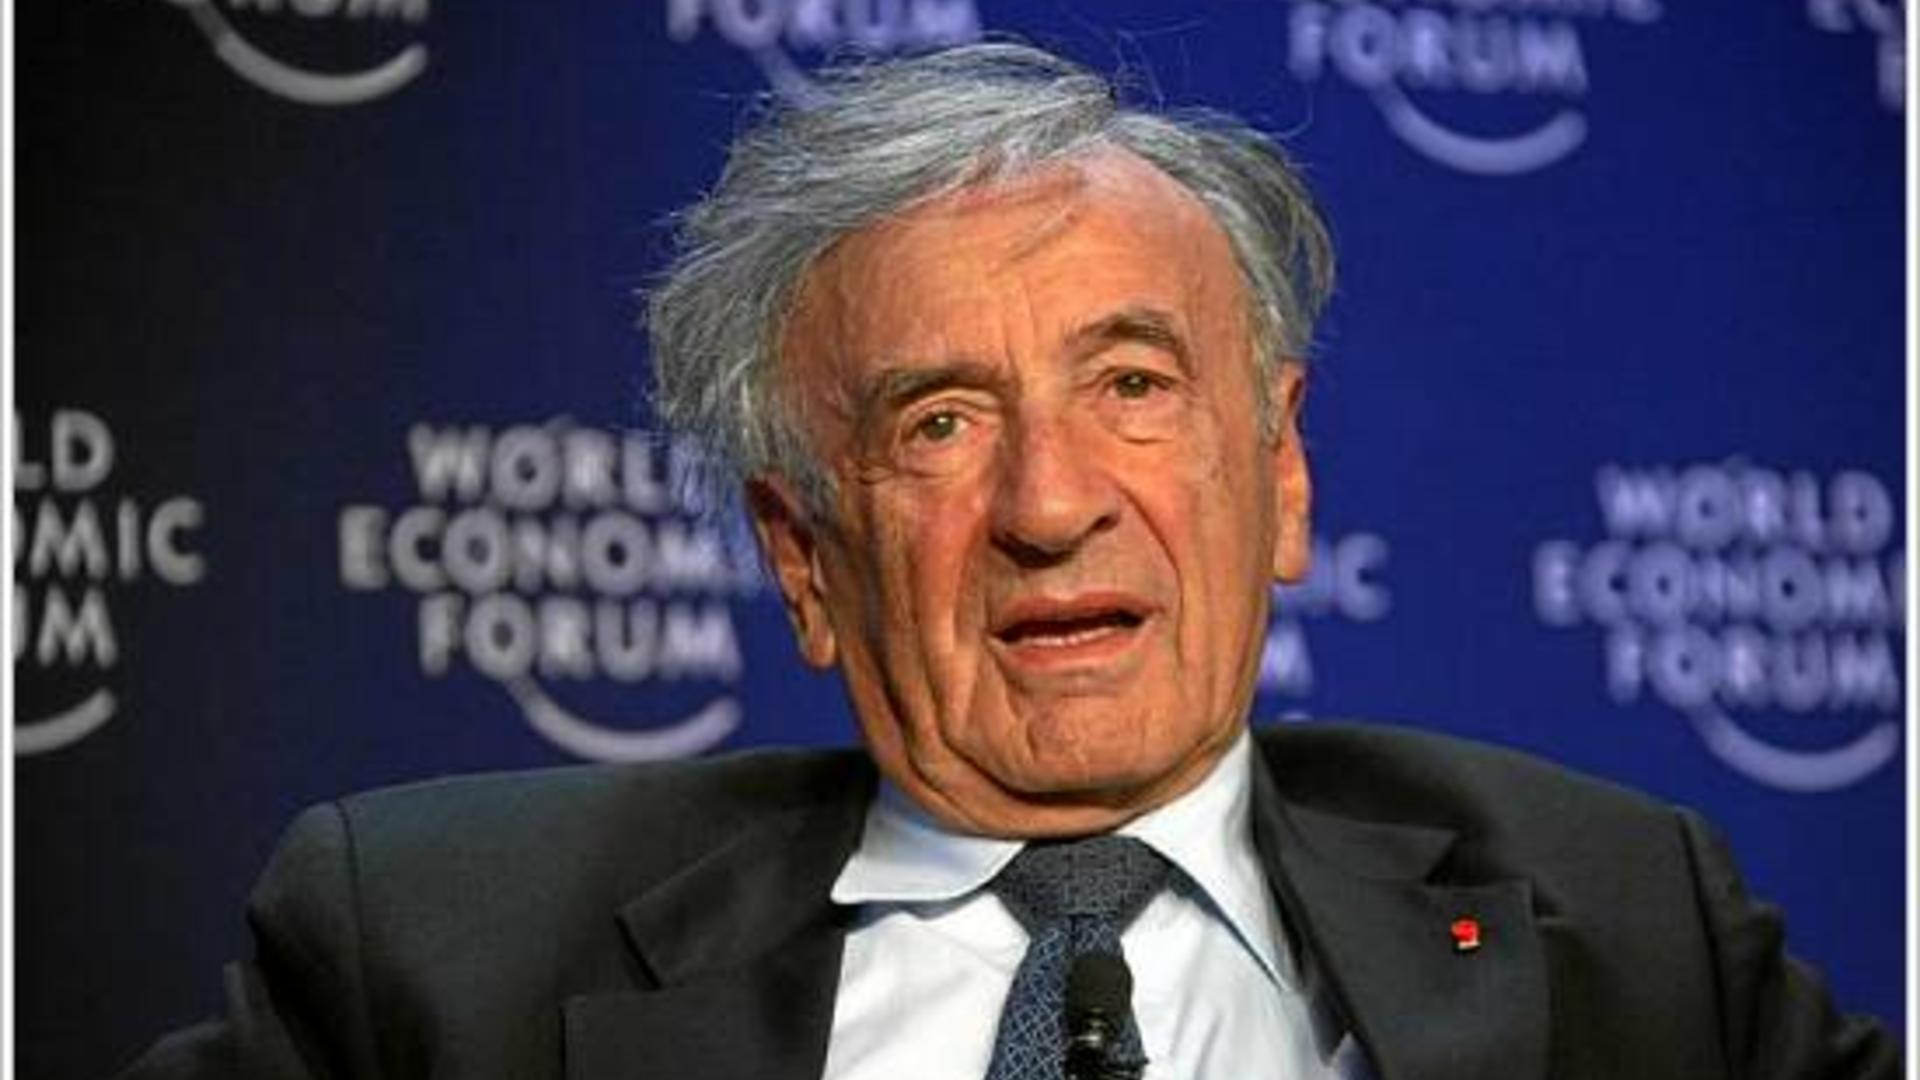 Elie Wiesel in 2007